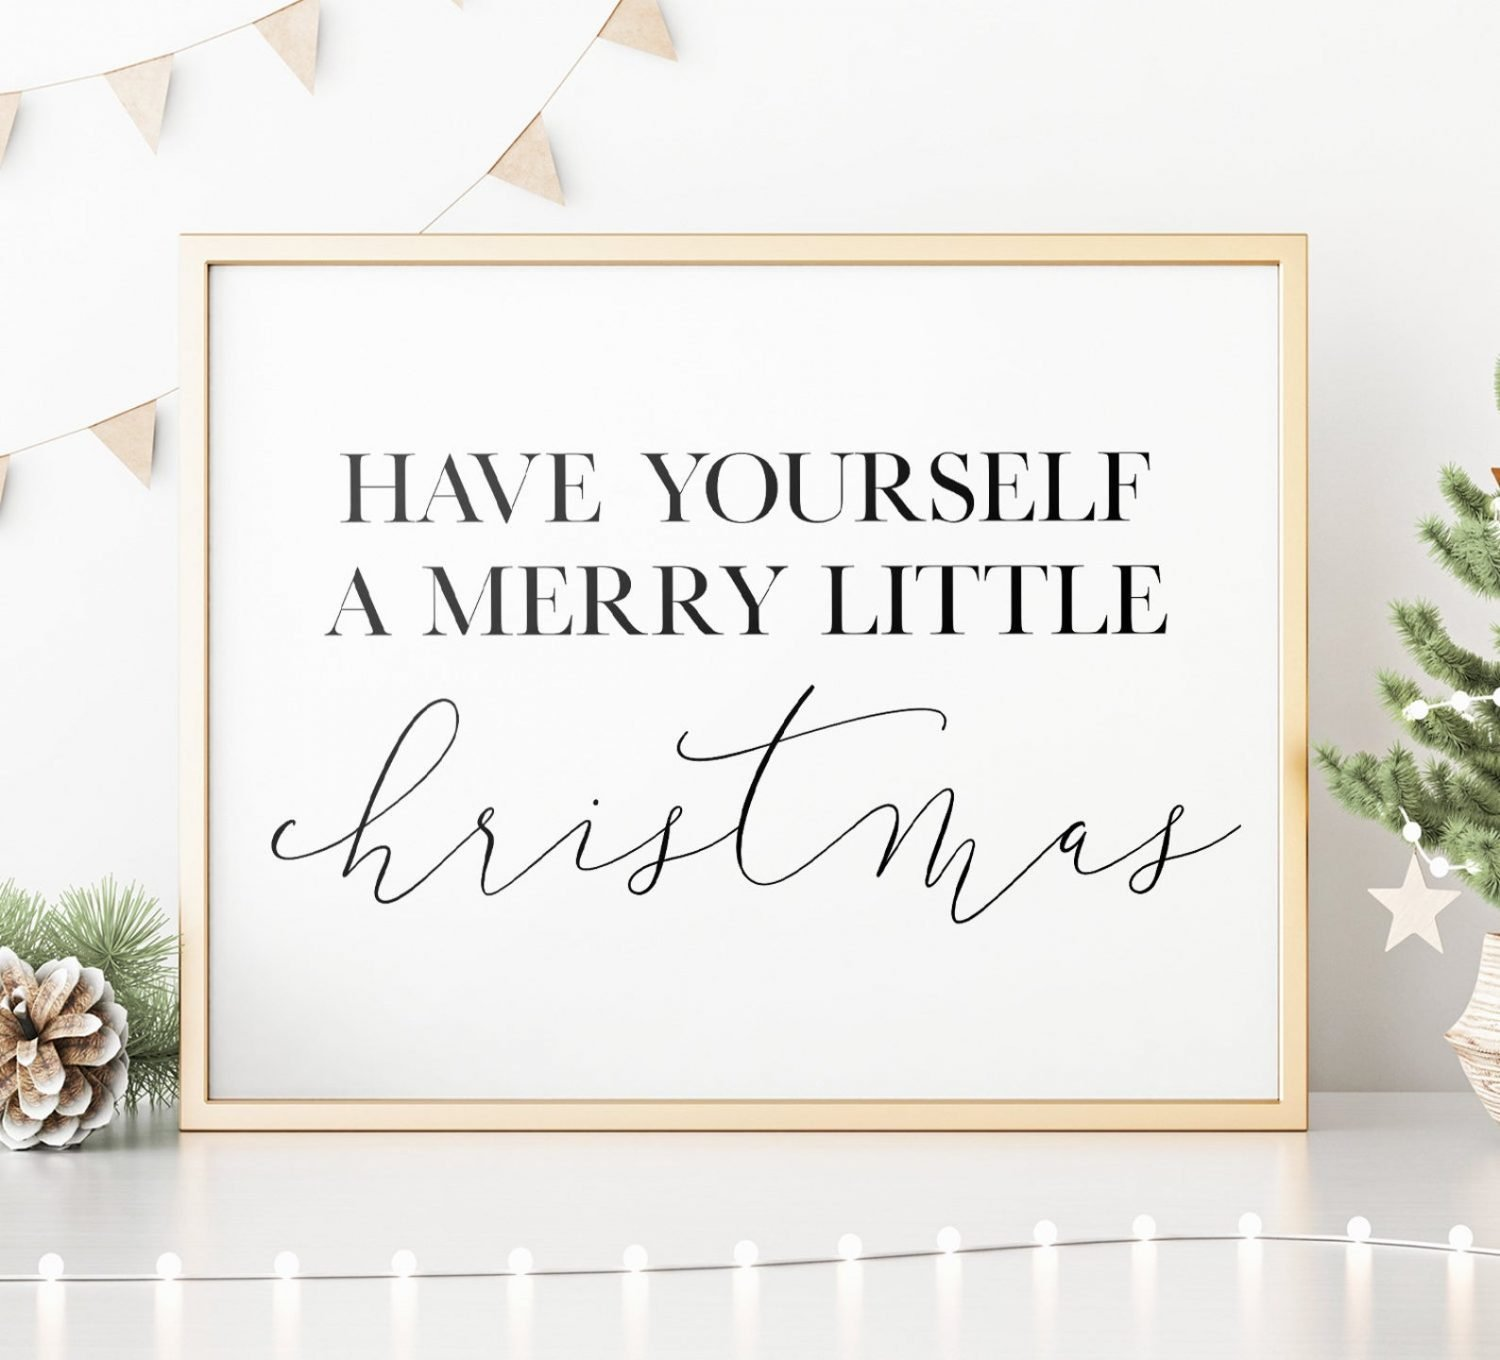 Have Yourself A Merry Little Christmas Printable Art, Christmas Decoration, Merry Christmas Sign, Christmas Quote Prints